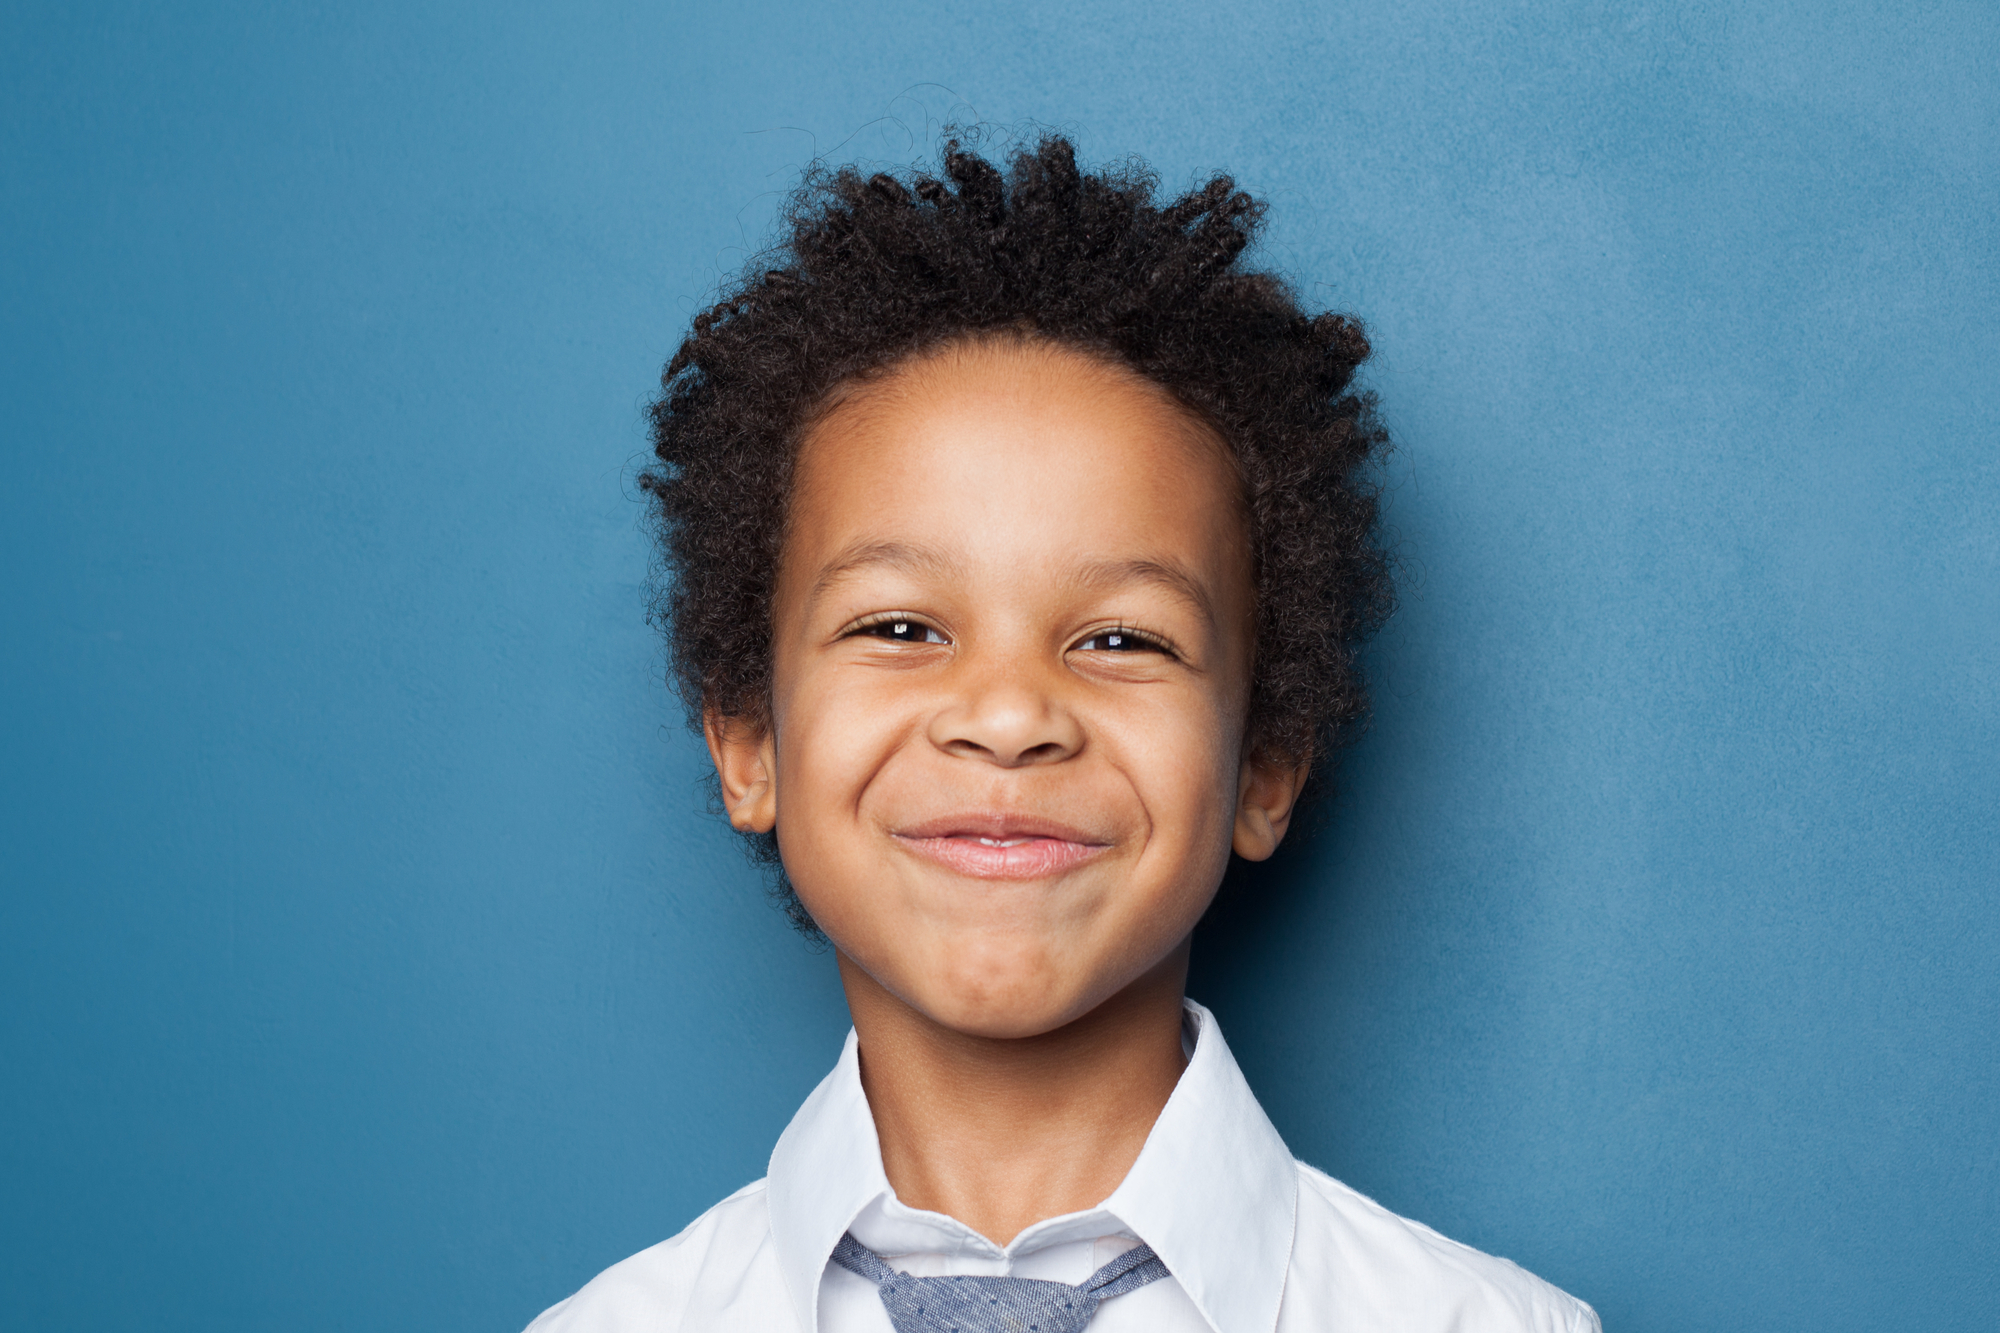 portrait of african american boy on blue background